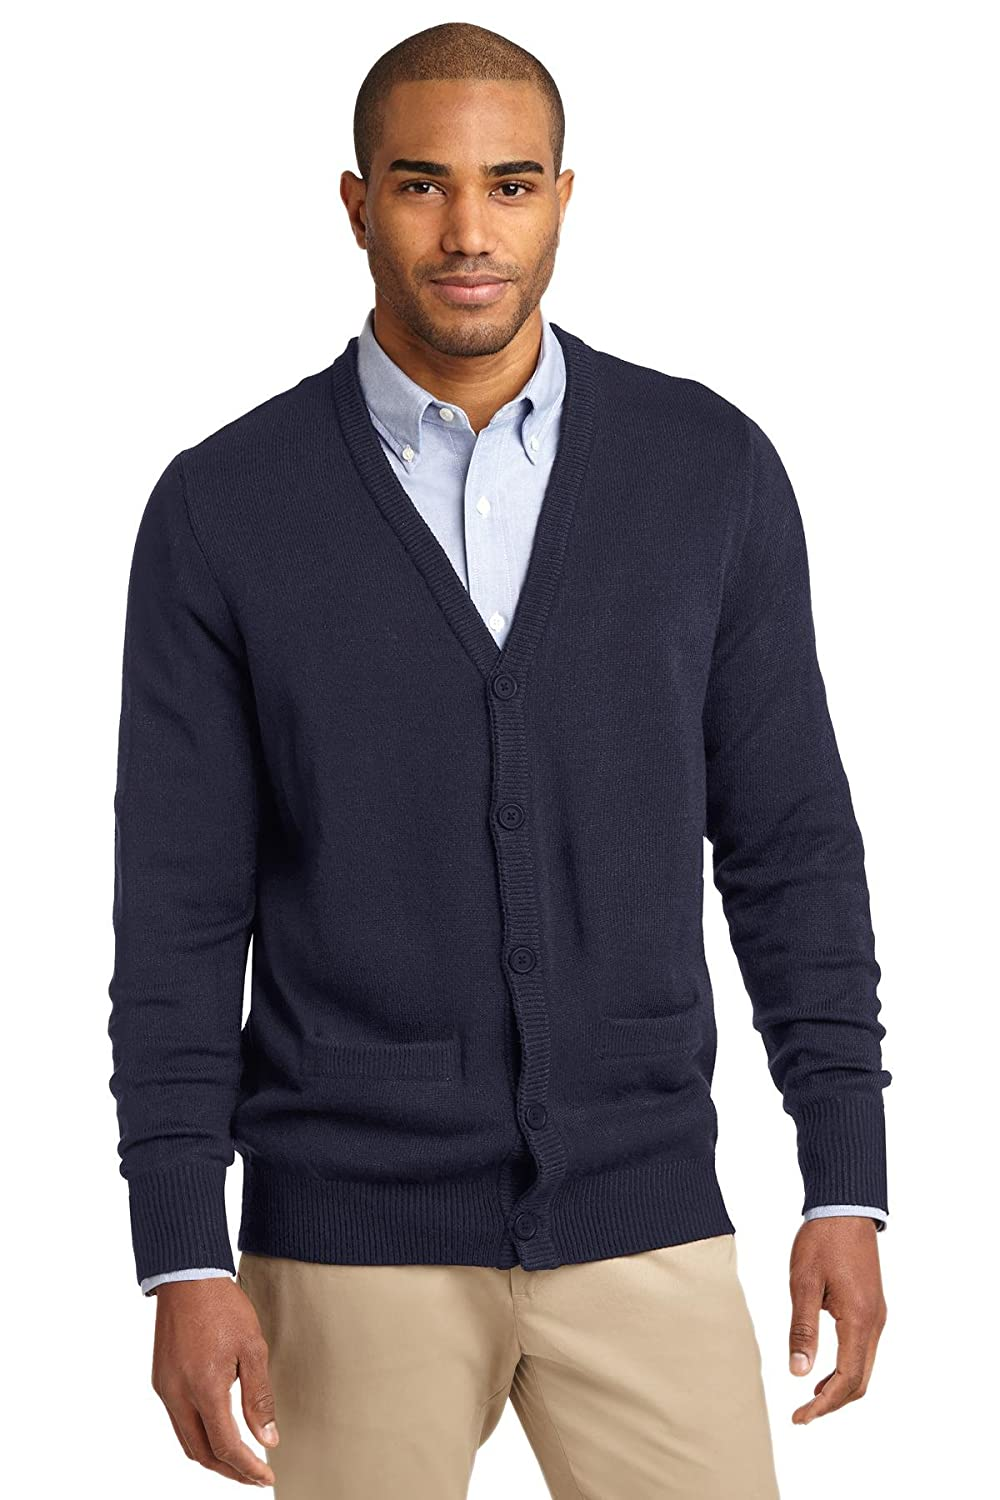 Port Authority Men's Value VNeck Cardigan with Pockets